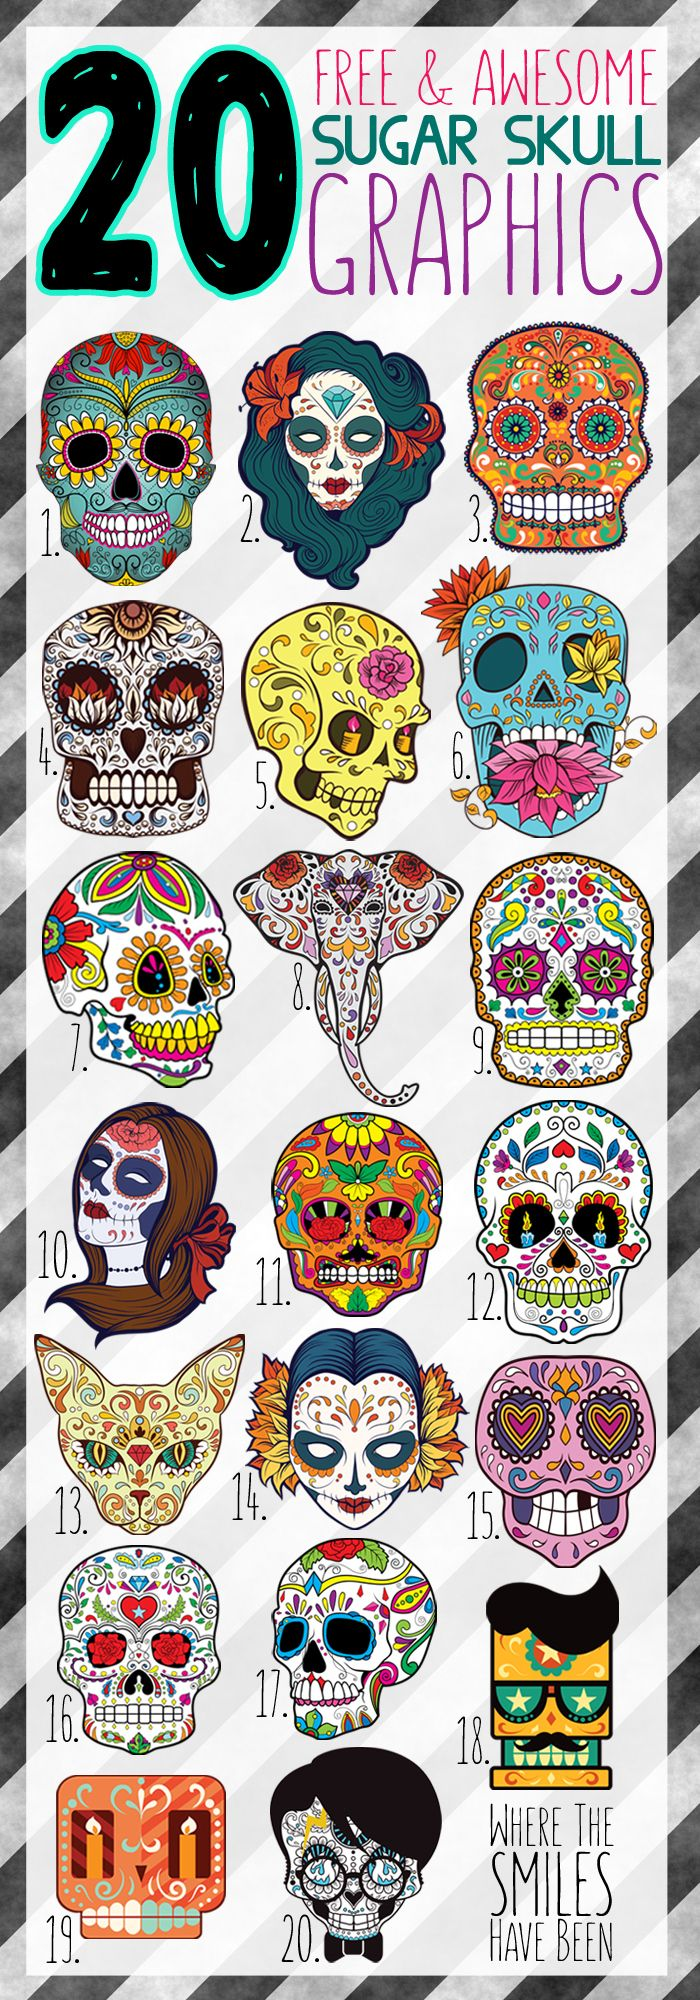 20 Free & Awesome Sugar Skull Graphics! | Where The Smiles Have Been. Pinned for inspiration only.